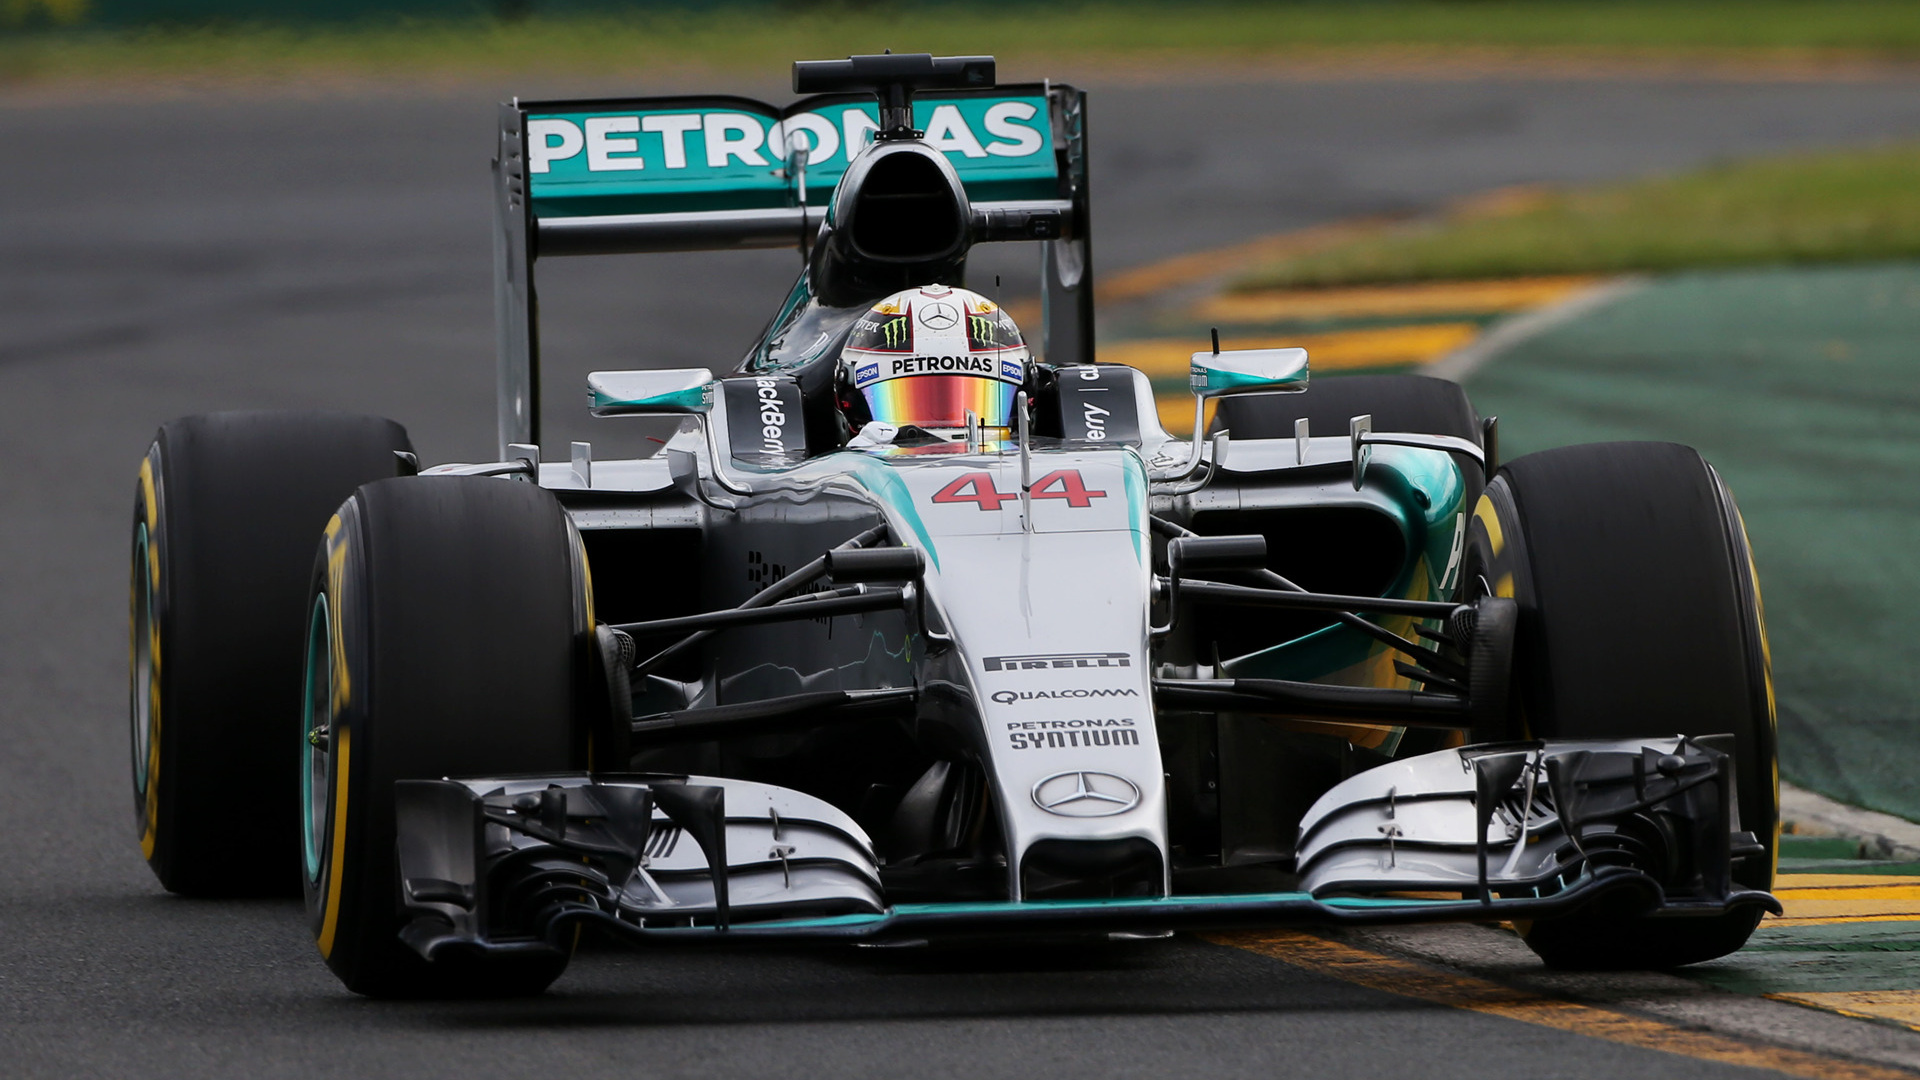 Jaguar Car Wallpapers Hd Free Download 2015 Mercedes Amg F1 W06 Hybrid Wallpapers And Hd Images